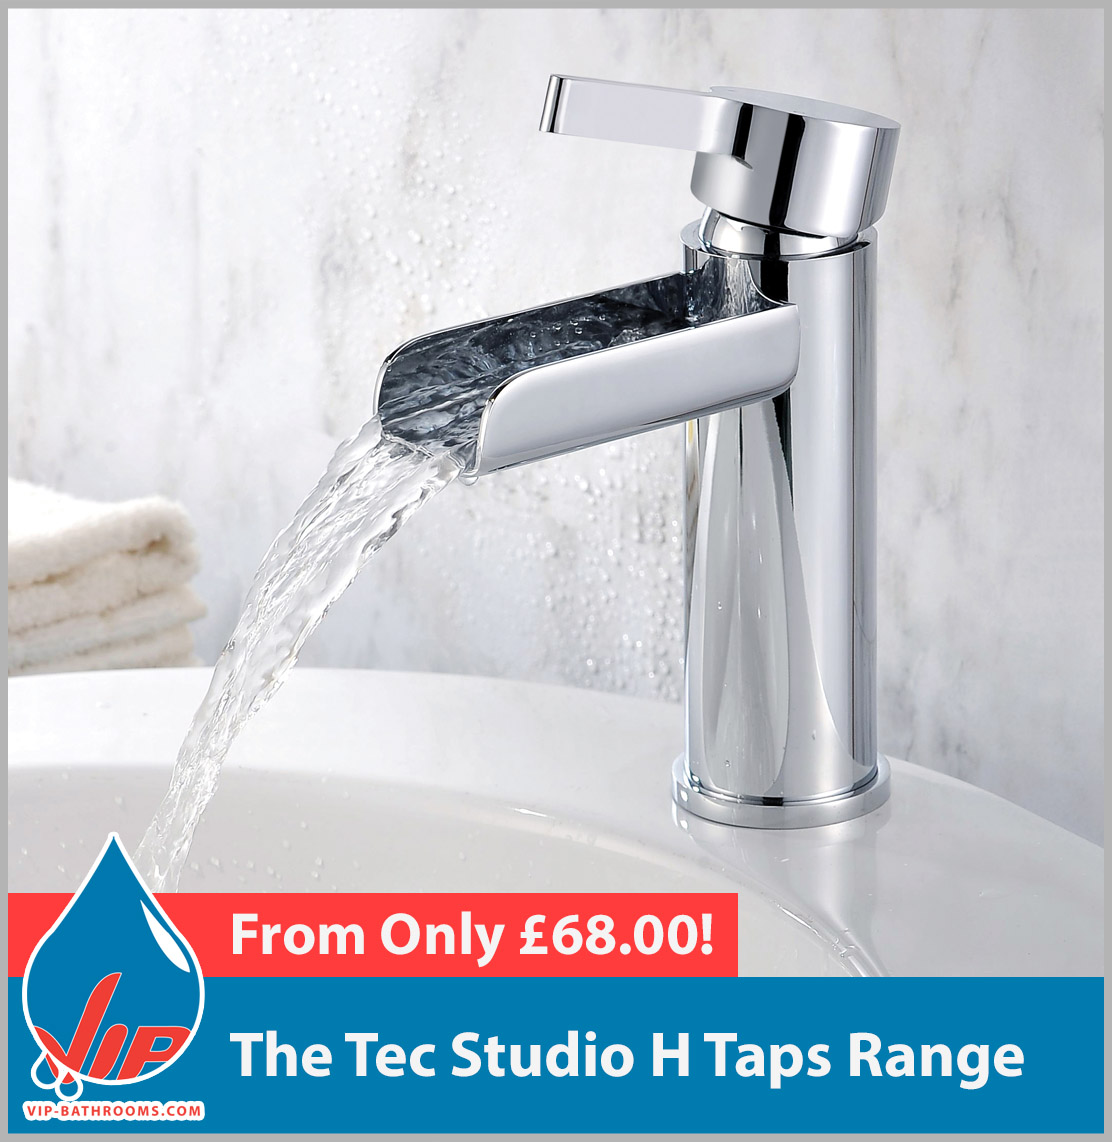 Click here to view the Tec Studio H range of high quality designer Bathroom Taps